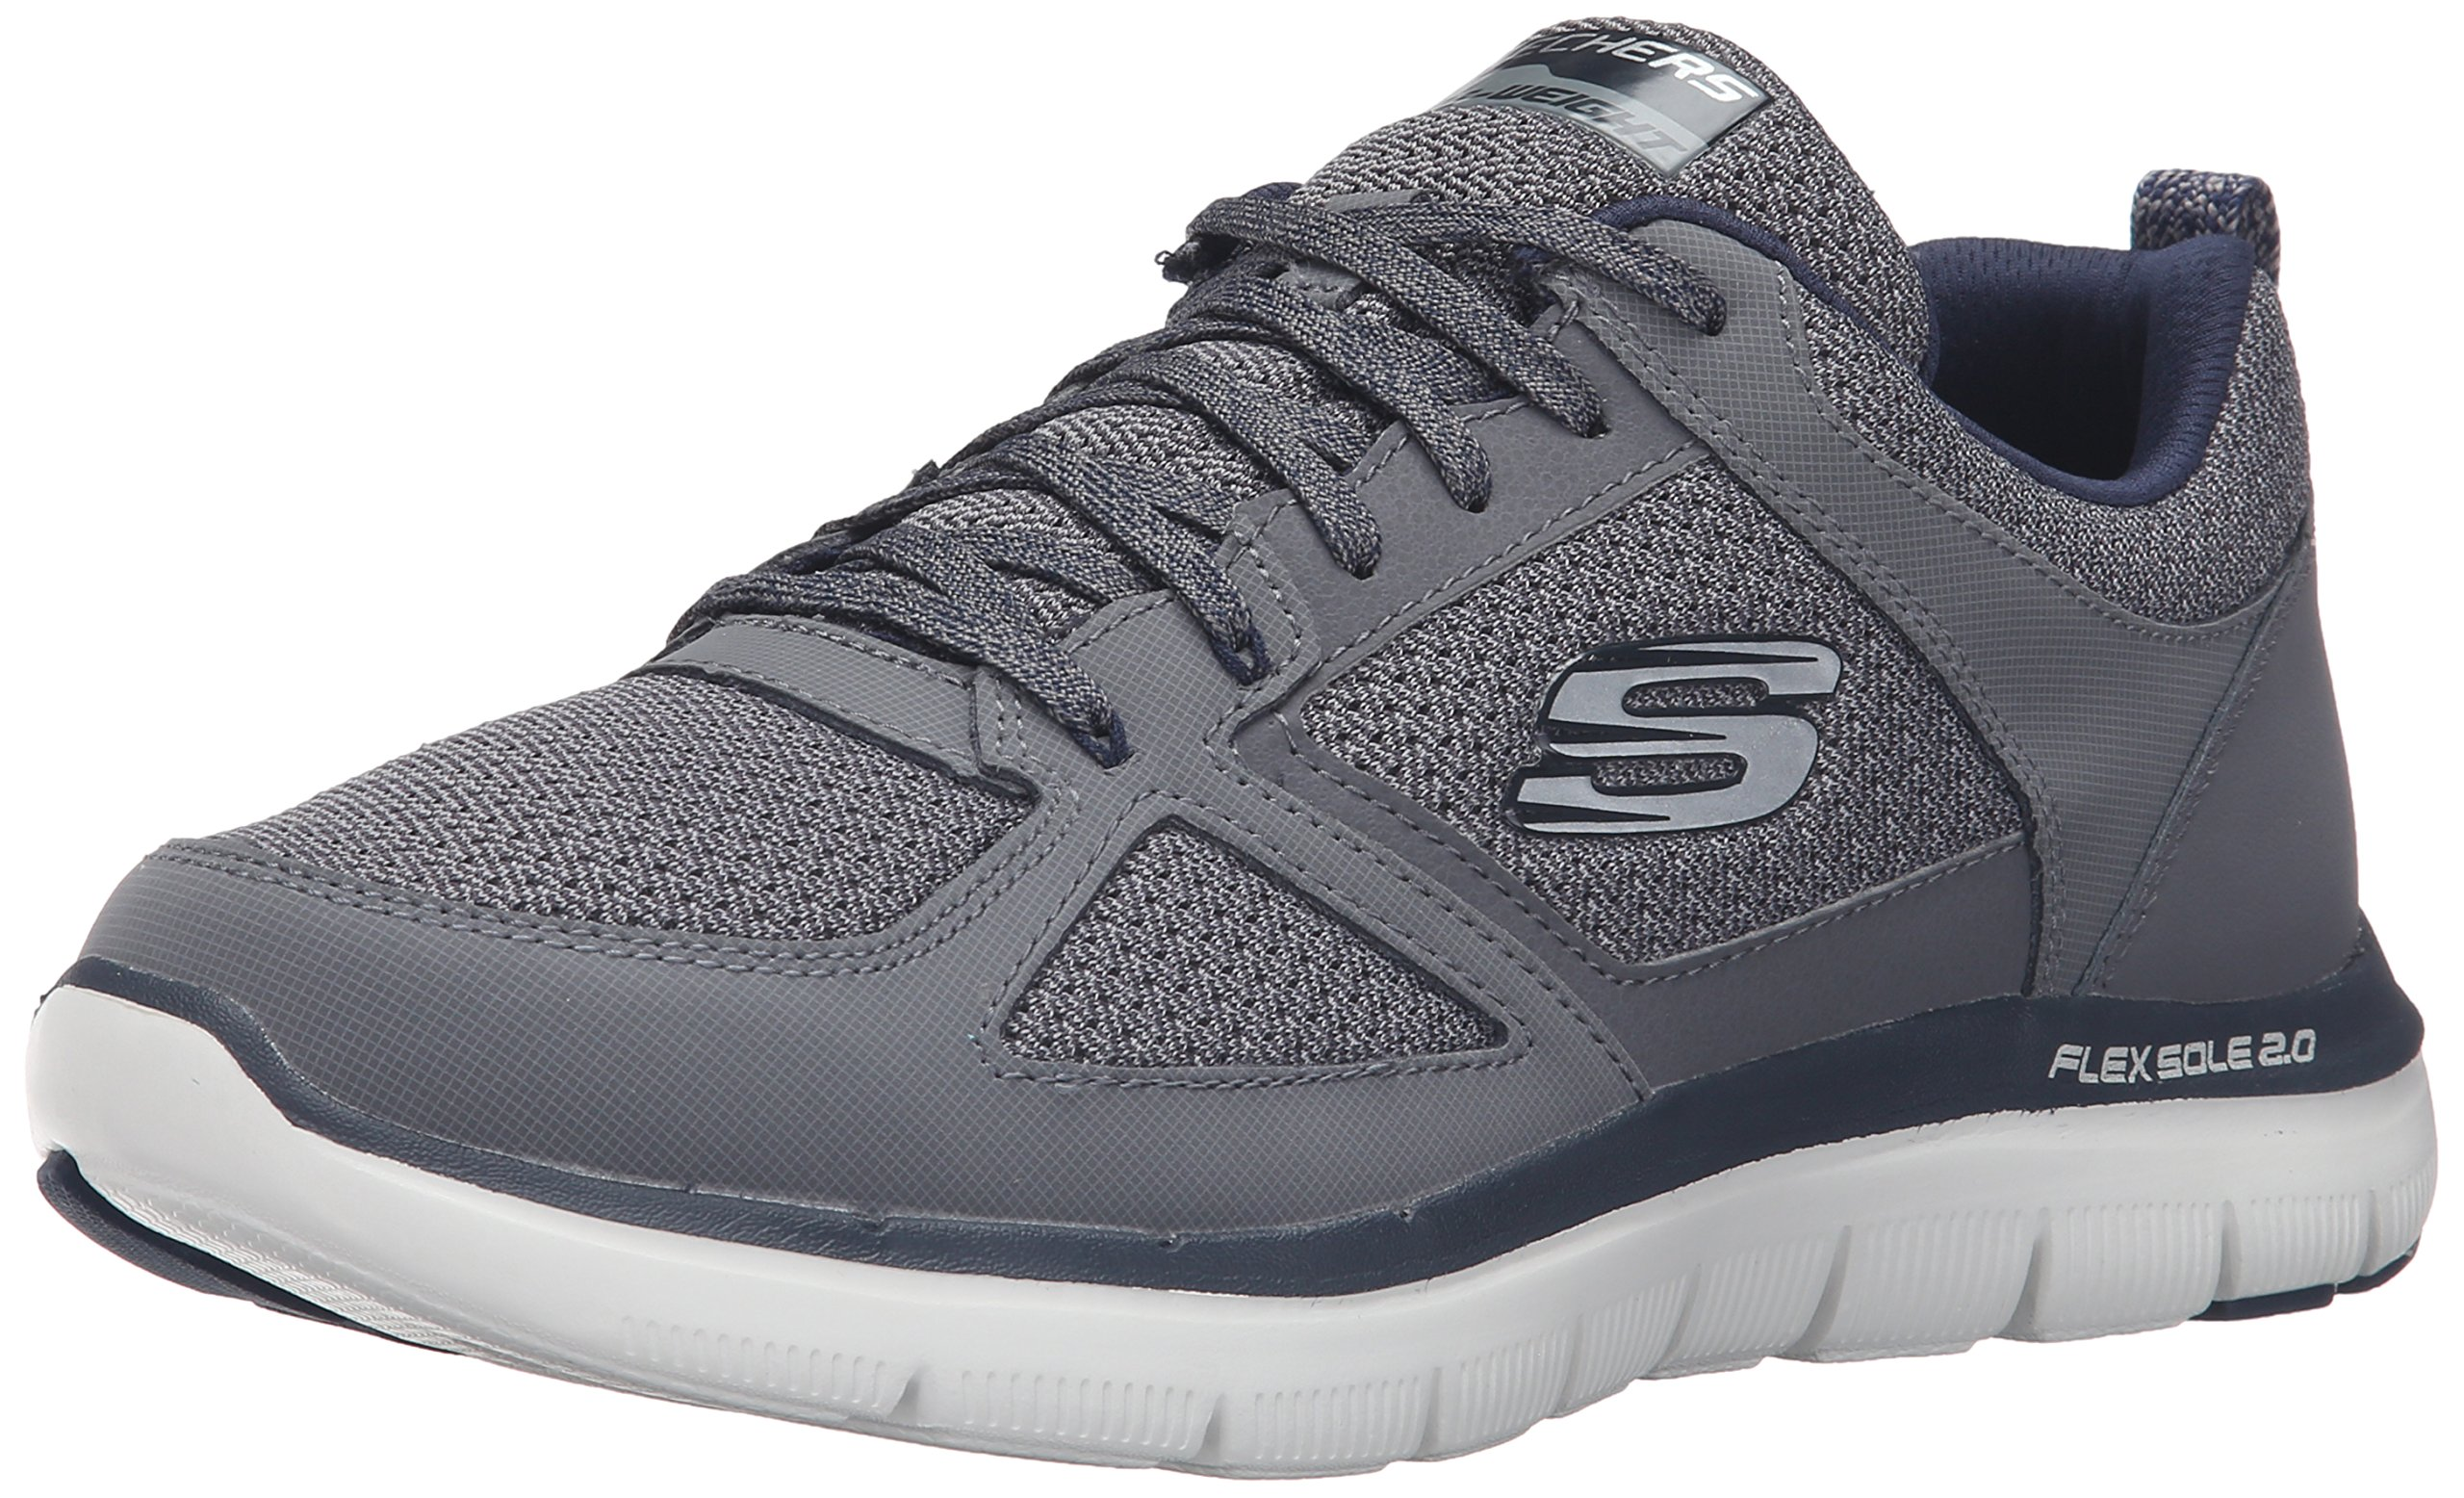 bc039e67eb Galleon - Skechers Sport Men s Flex Advantage 2.0 Oxford Sneaker ...